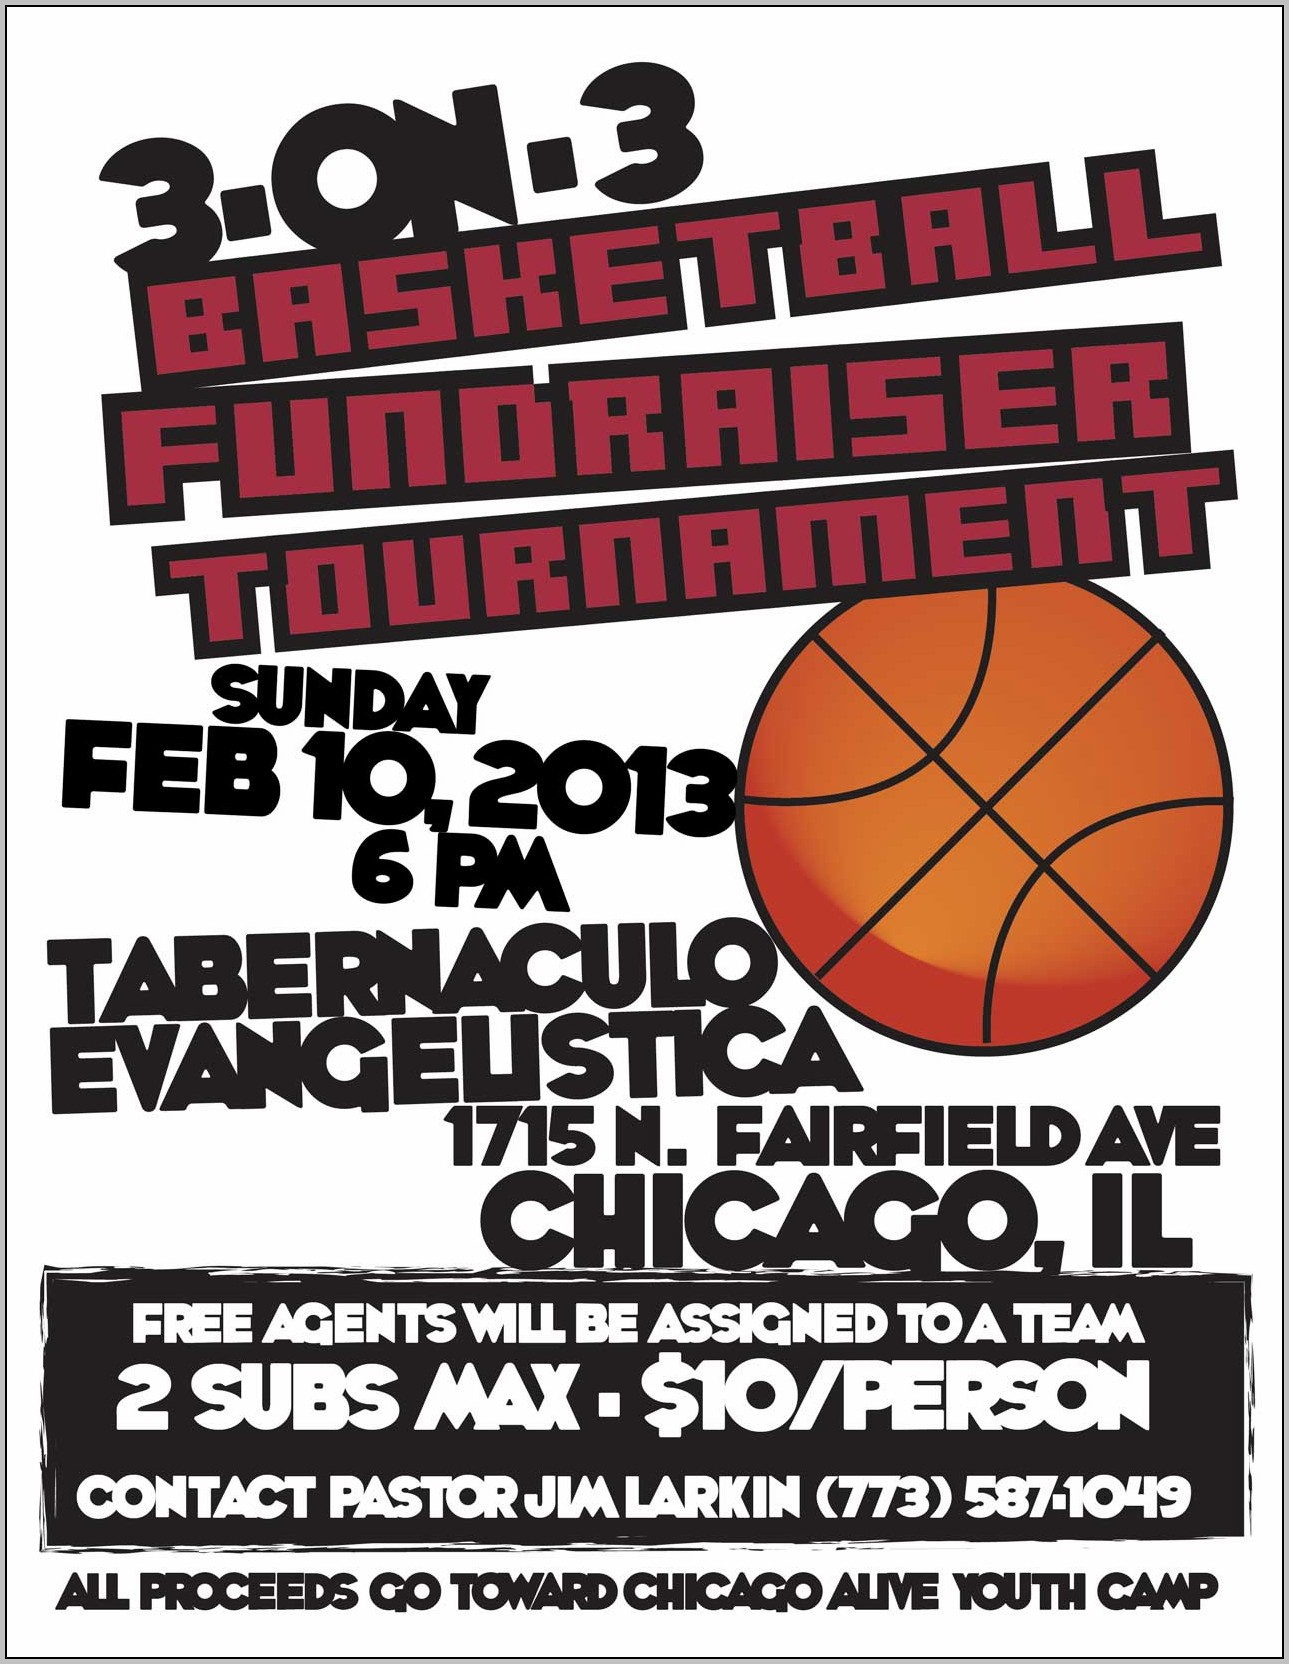 Basketball Fundraiser Flyer Template